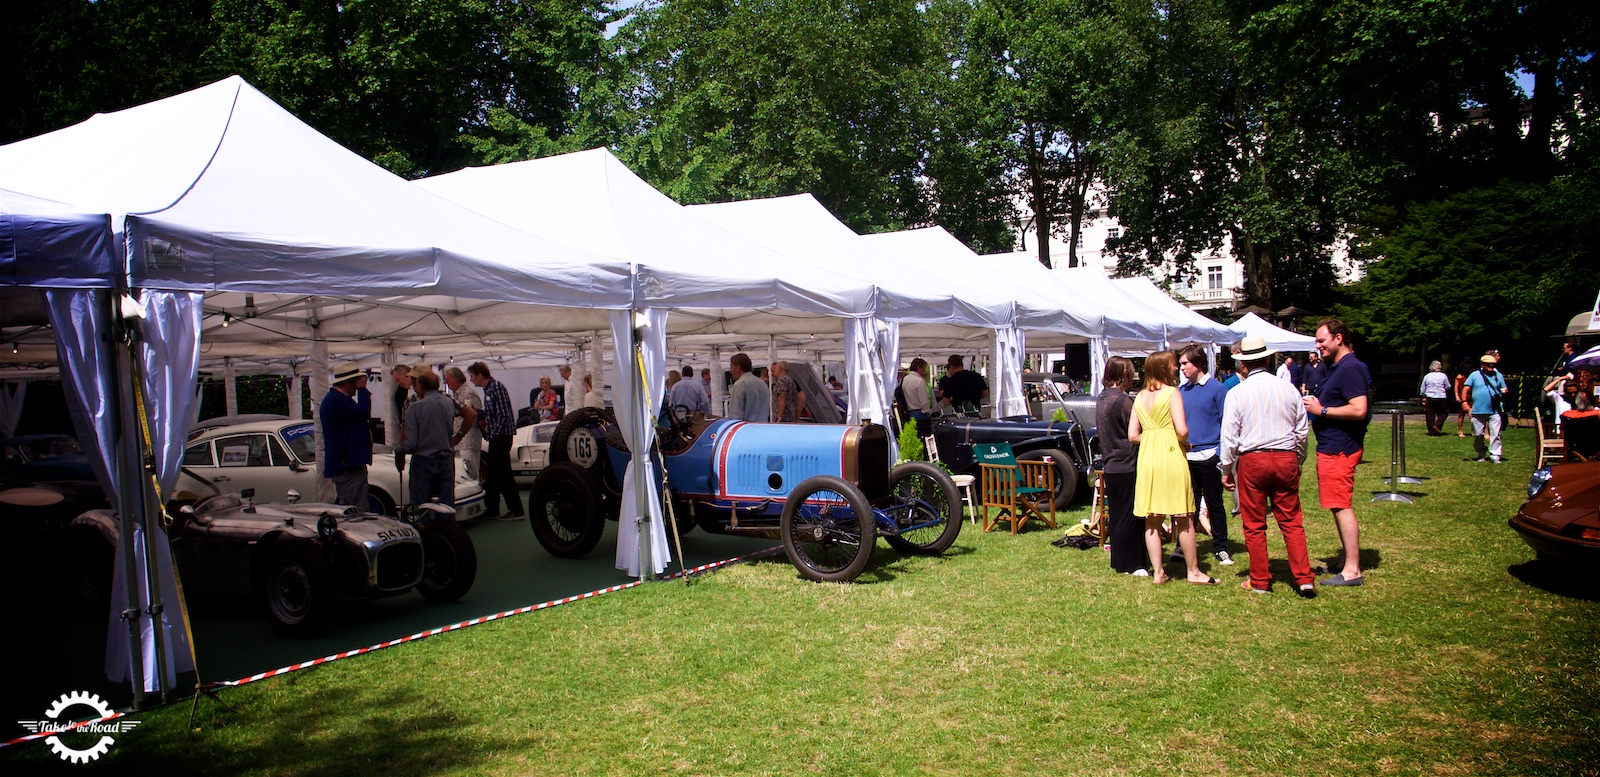 Two Weeks to the Belgravia Classic Car Show 2019